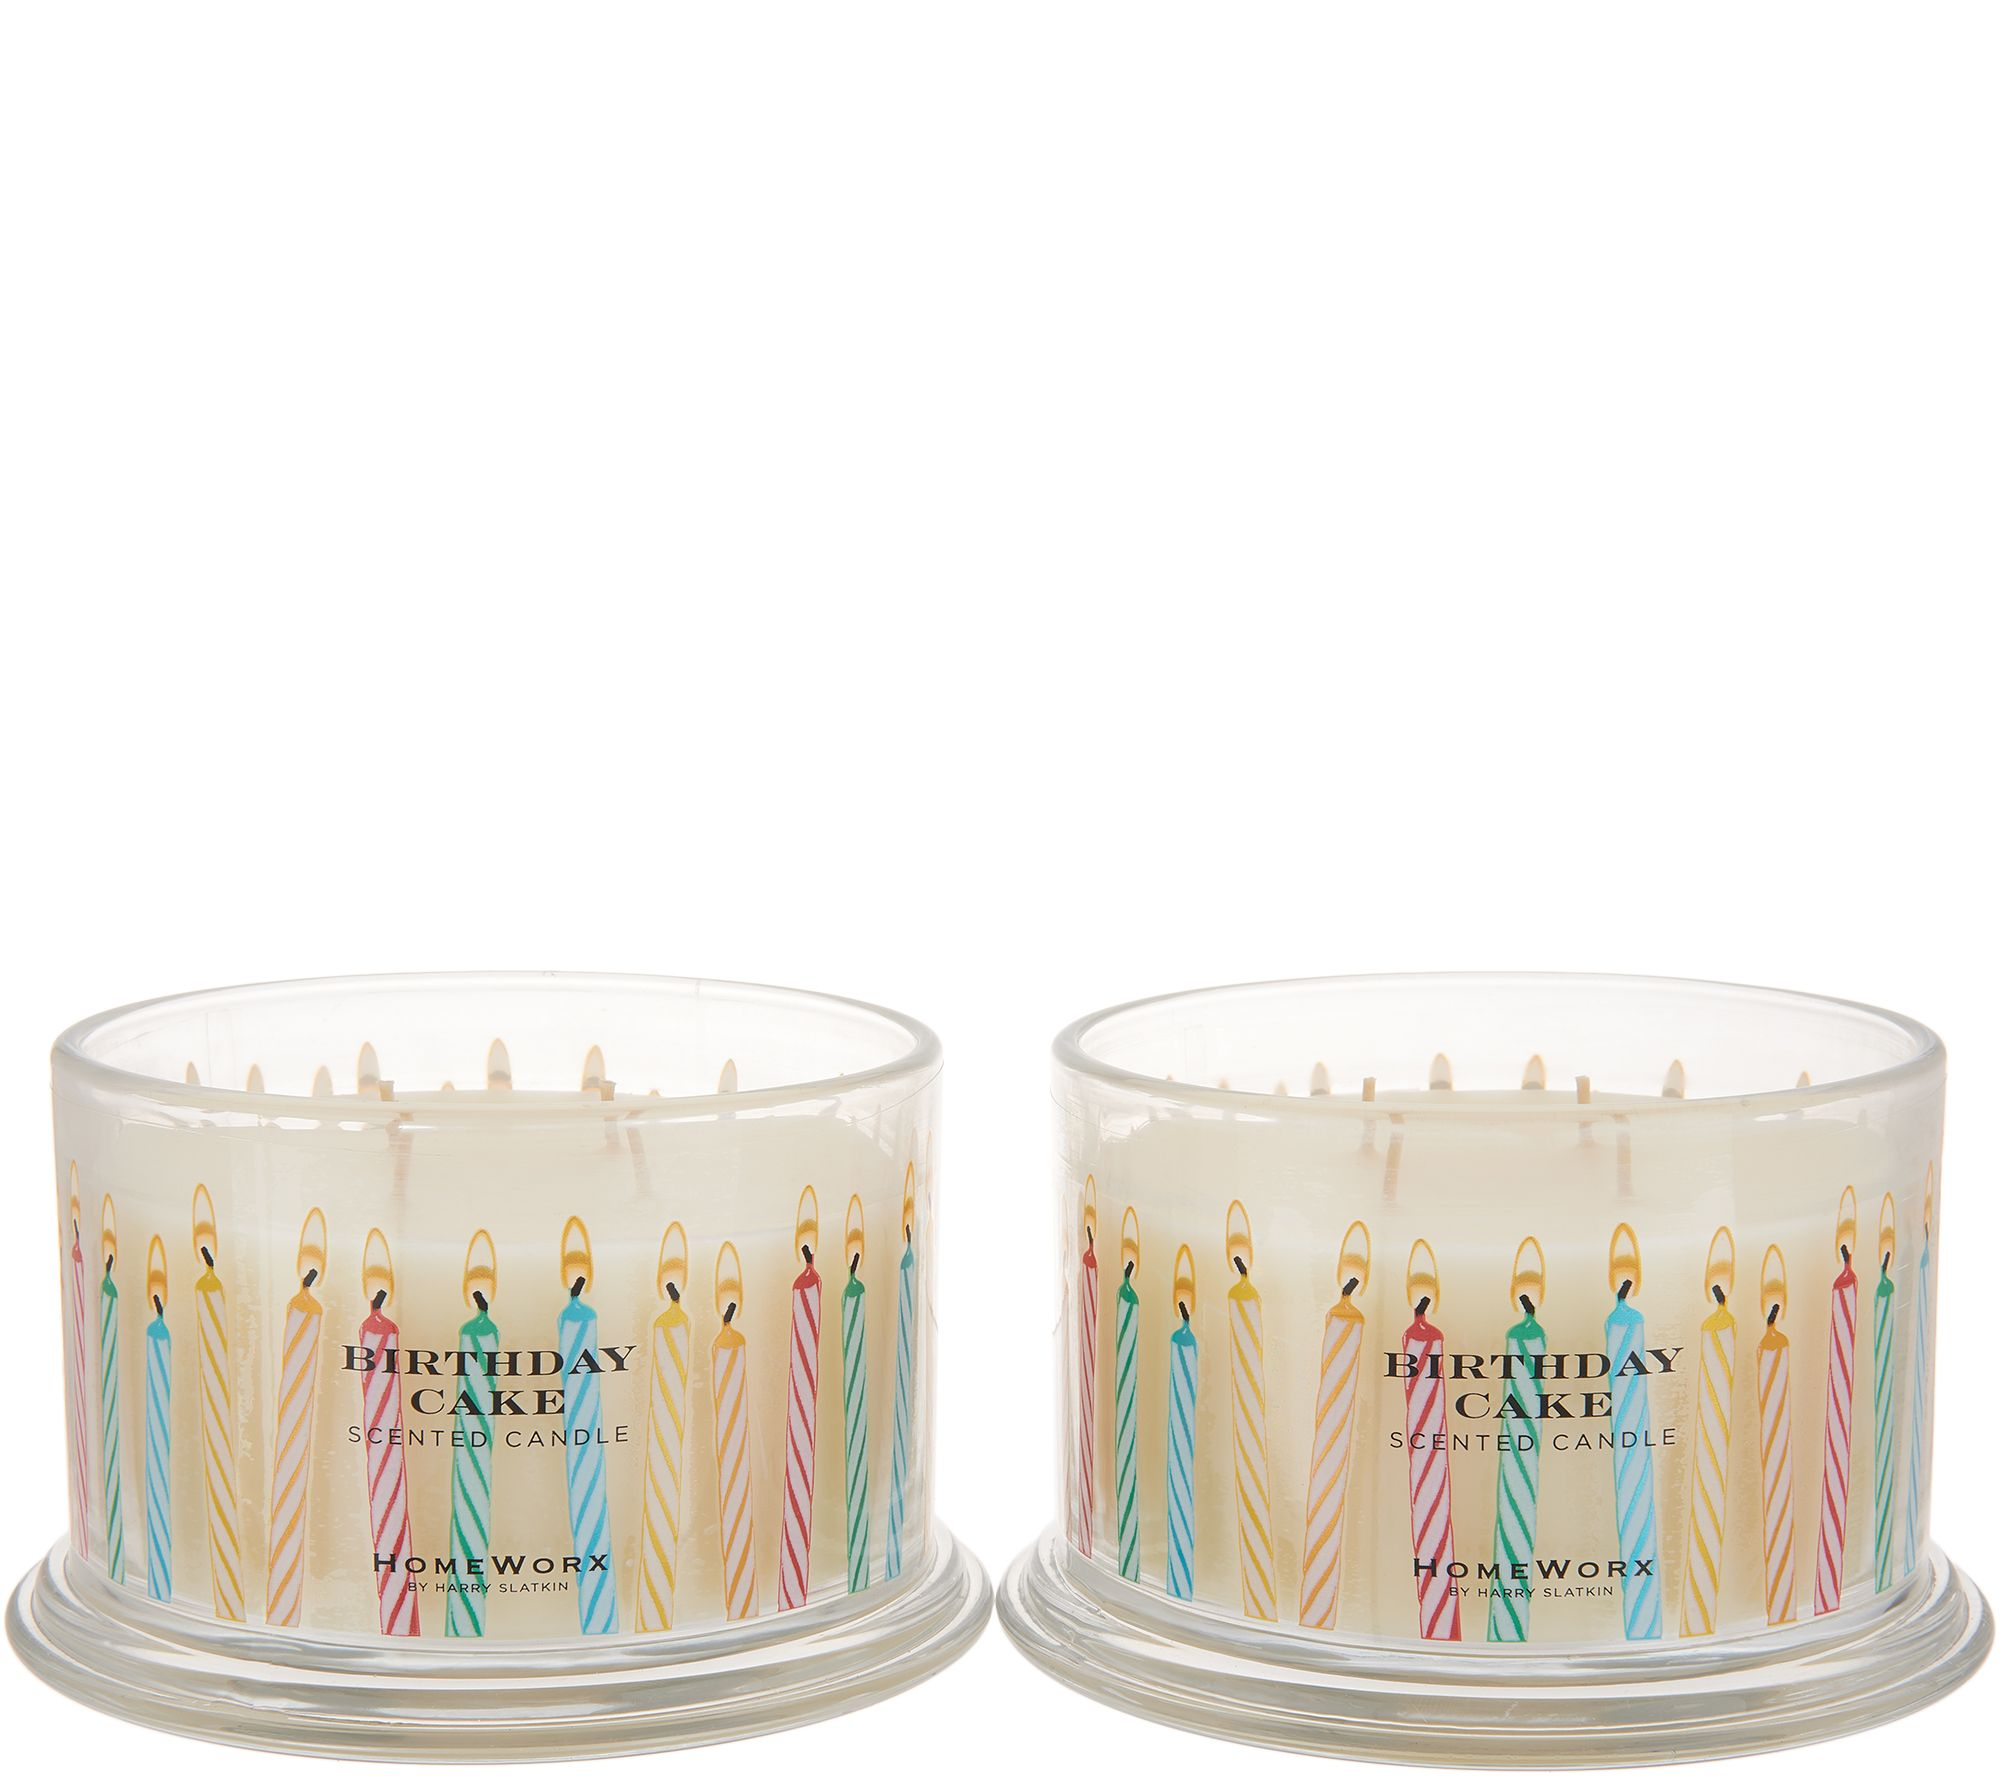 HomeWorx By Harry Slatkin Set Of 2 18 Oz Birthday Cake Candles